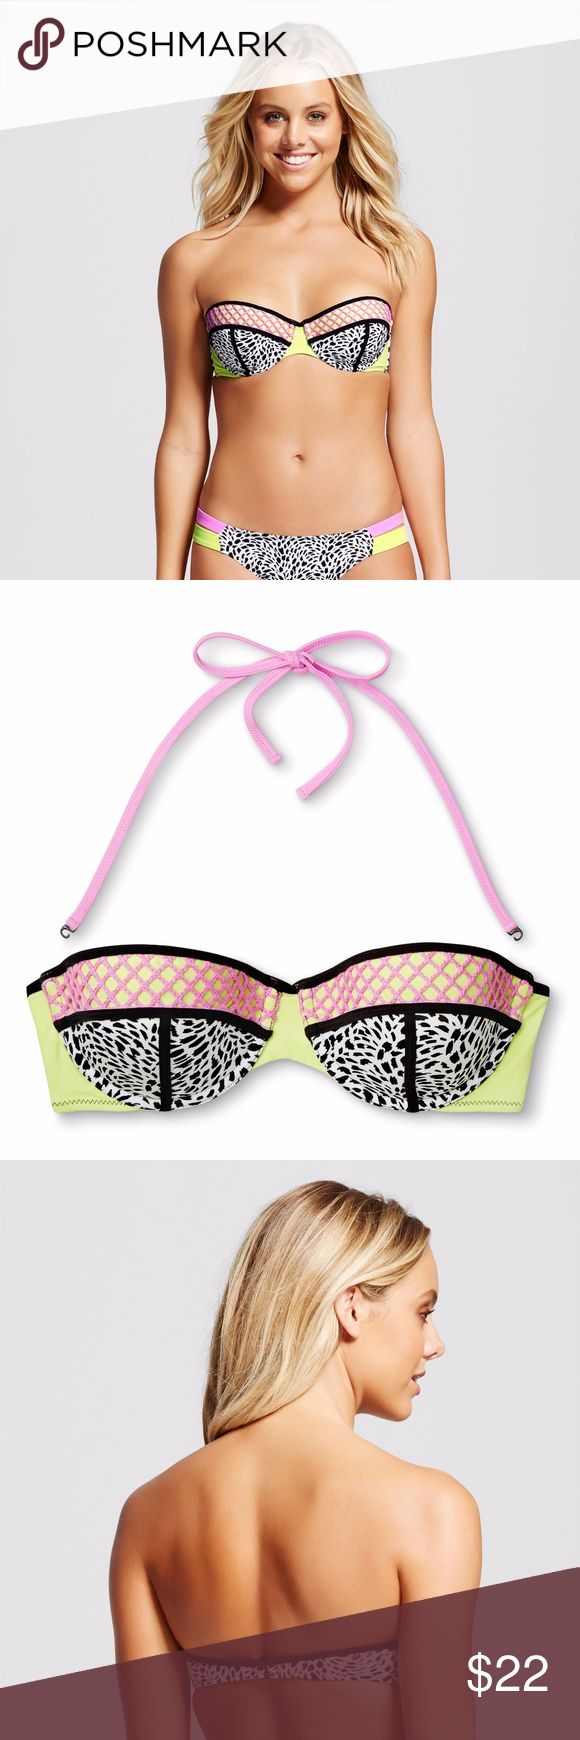 New SHADE & SHORE Vacay Bandeau Bikini Top Women's Vacay Bandeau Bikini Top - Shade & Shore size 34D or 36D  Prepare to be fierce in this Bikini Top with its flirty, all over animal print. It has color block detail, contrast crochet netting & sporty black binding that will stand out in any crowd. Molded cups & an underwire provides light lift & support while the hook back closure offers easy adjustability.  Underwire w/molded cups  Bandeau top, adjustable Model wearing sz 34C  condition: new…